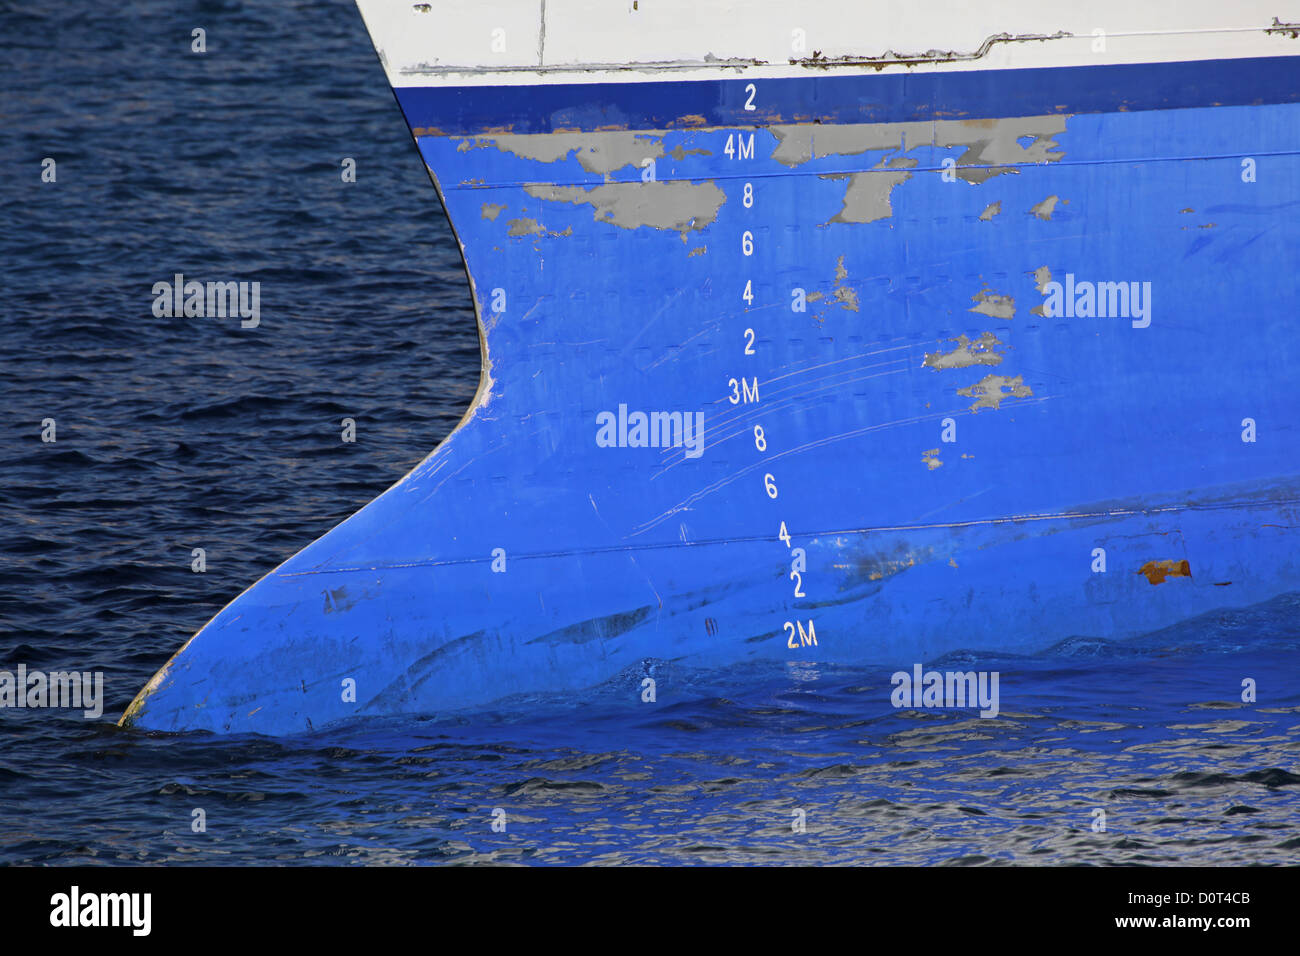 Close-up of the sharp keel with scratches of a high-speed ferry - Stock Image